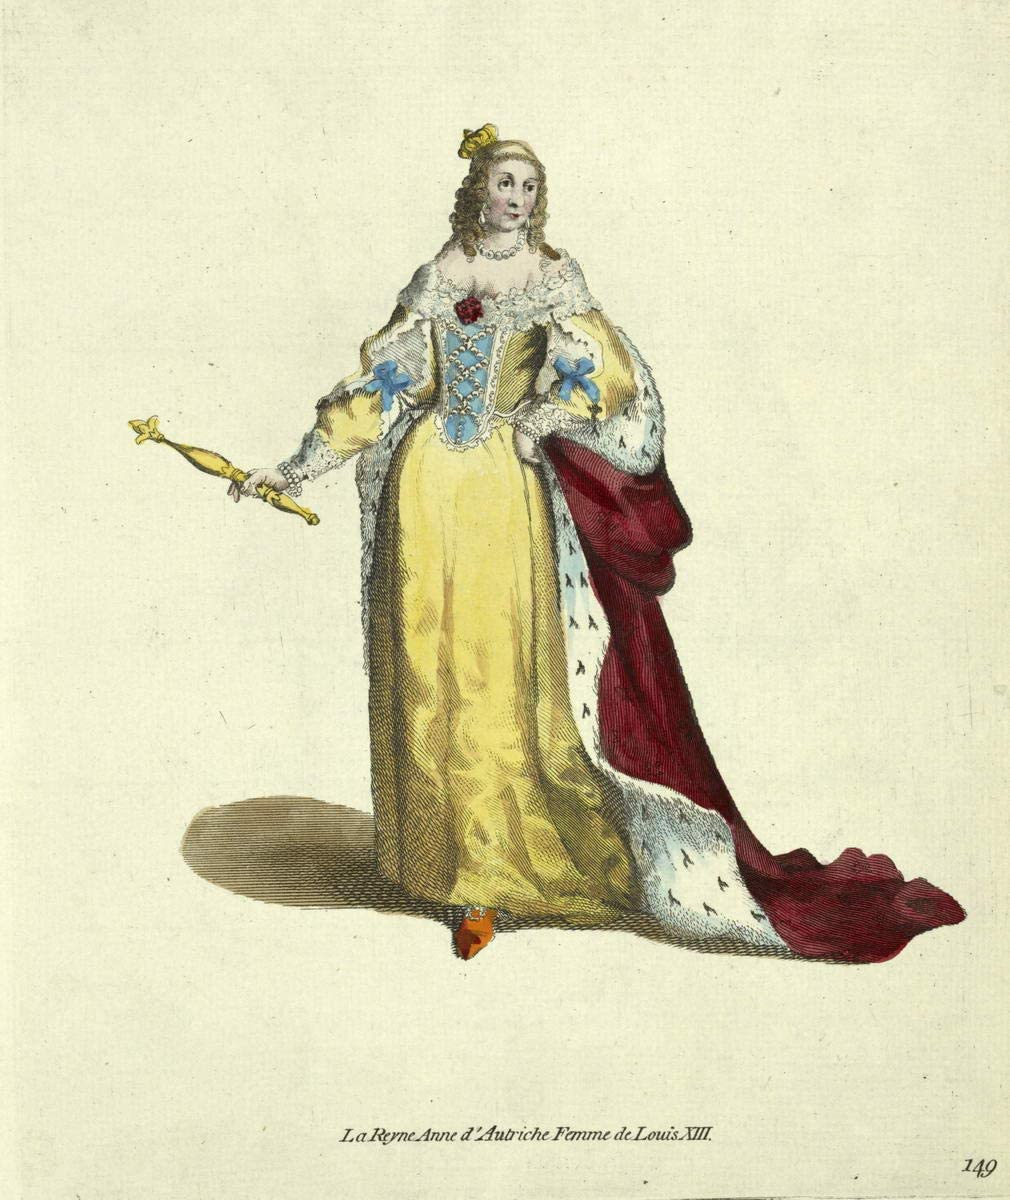 Thomas Jefferys Giclee Print On Canvas-Famous Paintings Fine Art Poster-Reproduction Wall Decor(Queen Anne Of Austria Wife Of Louis Xiii The Reyne Anne Dautriche)Large Size 26.5 x 31.5inches